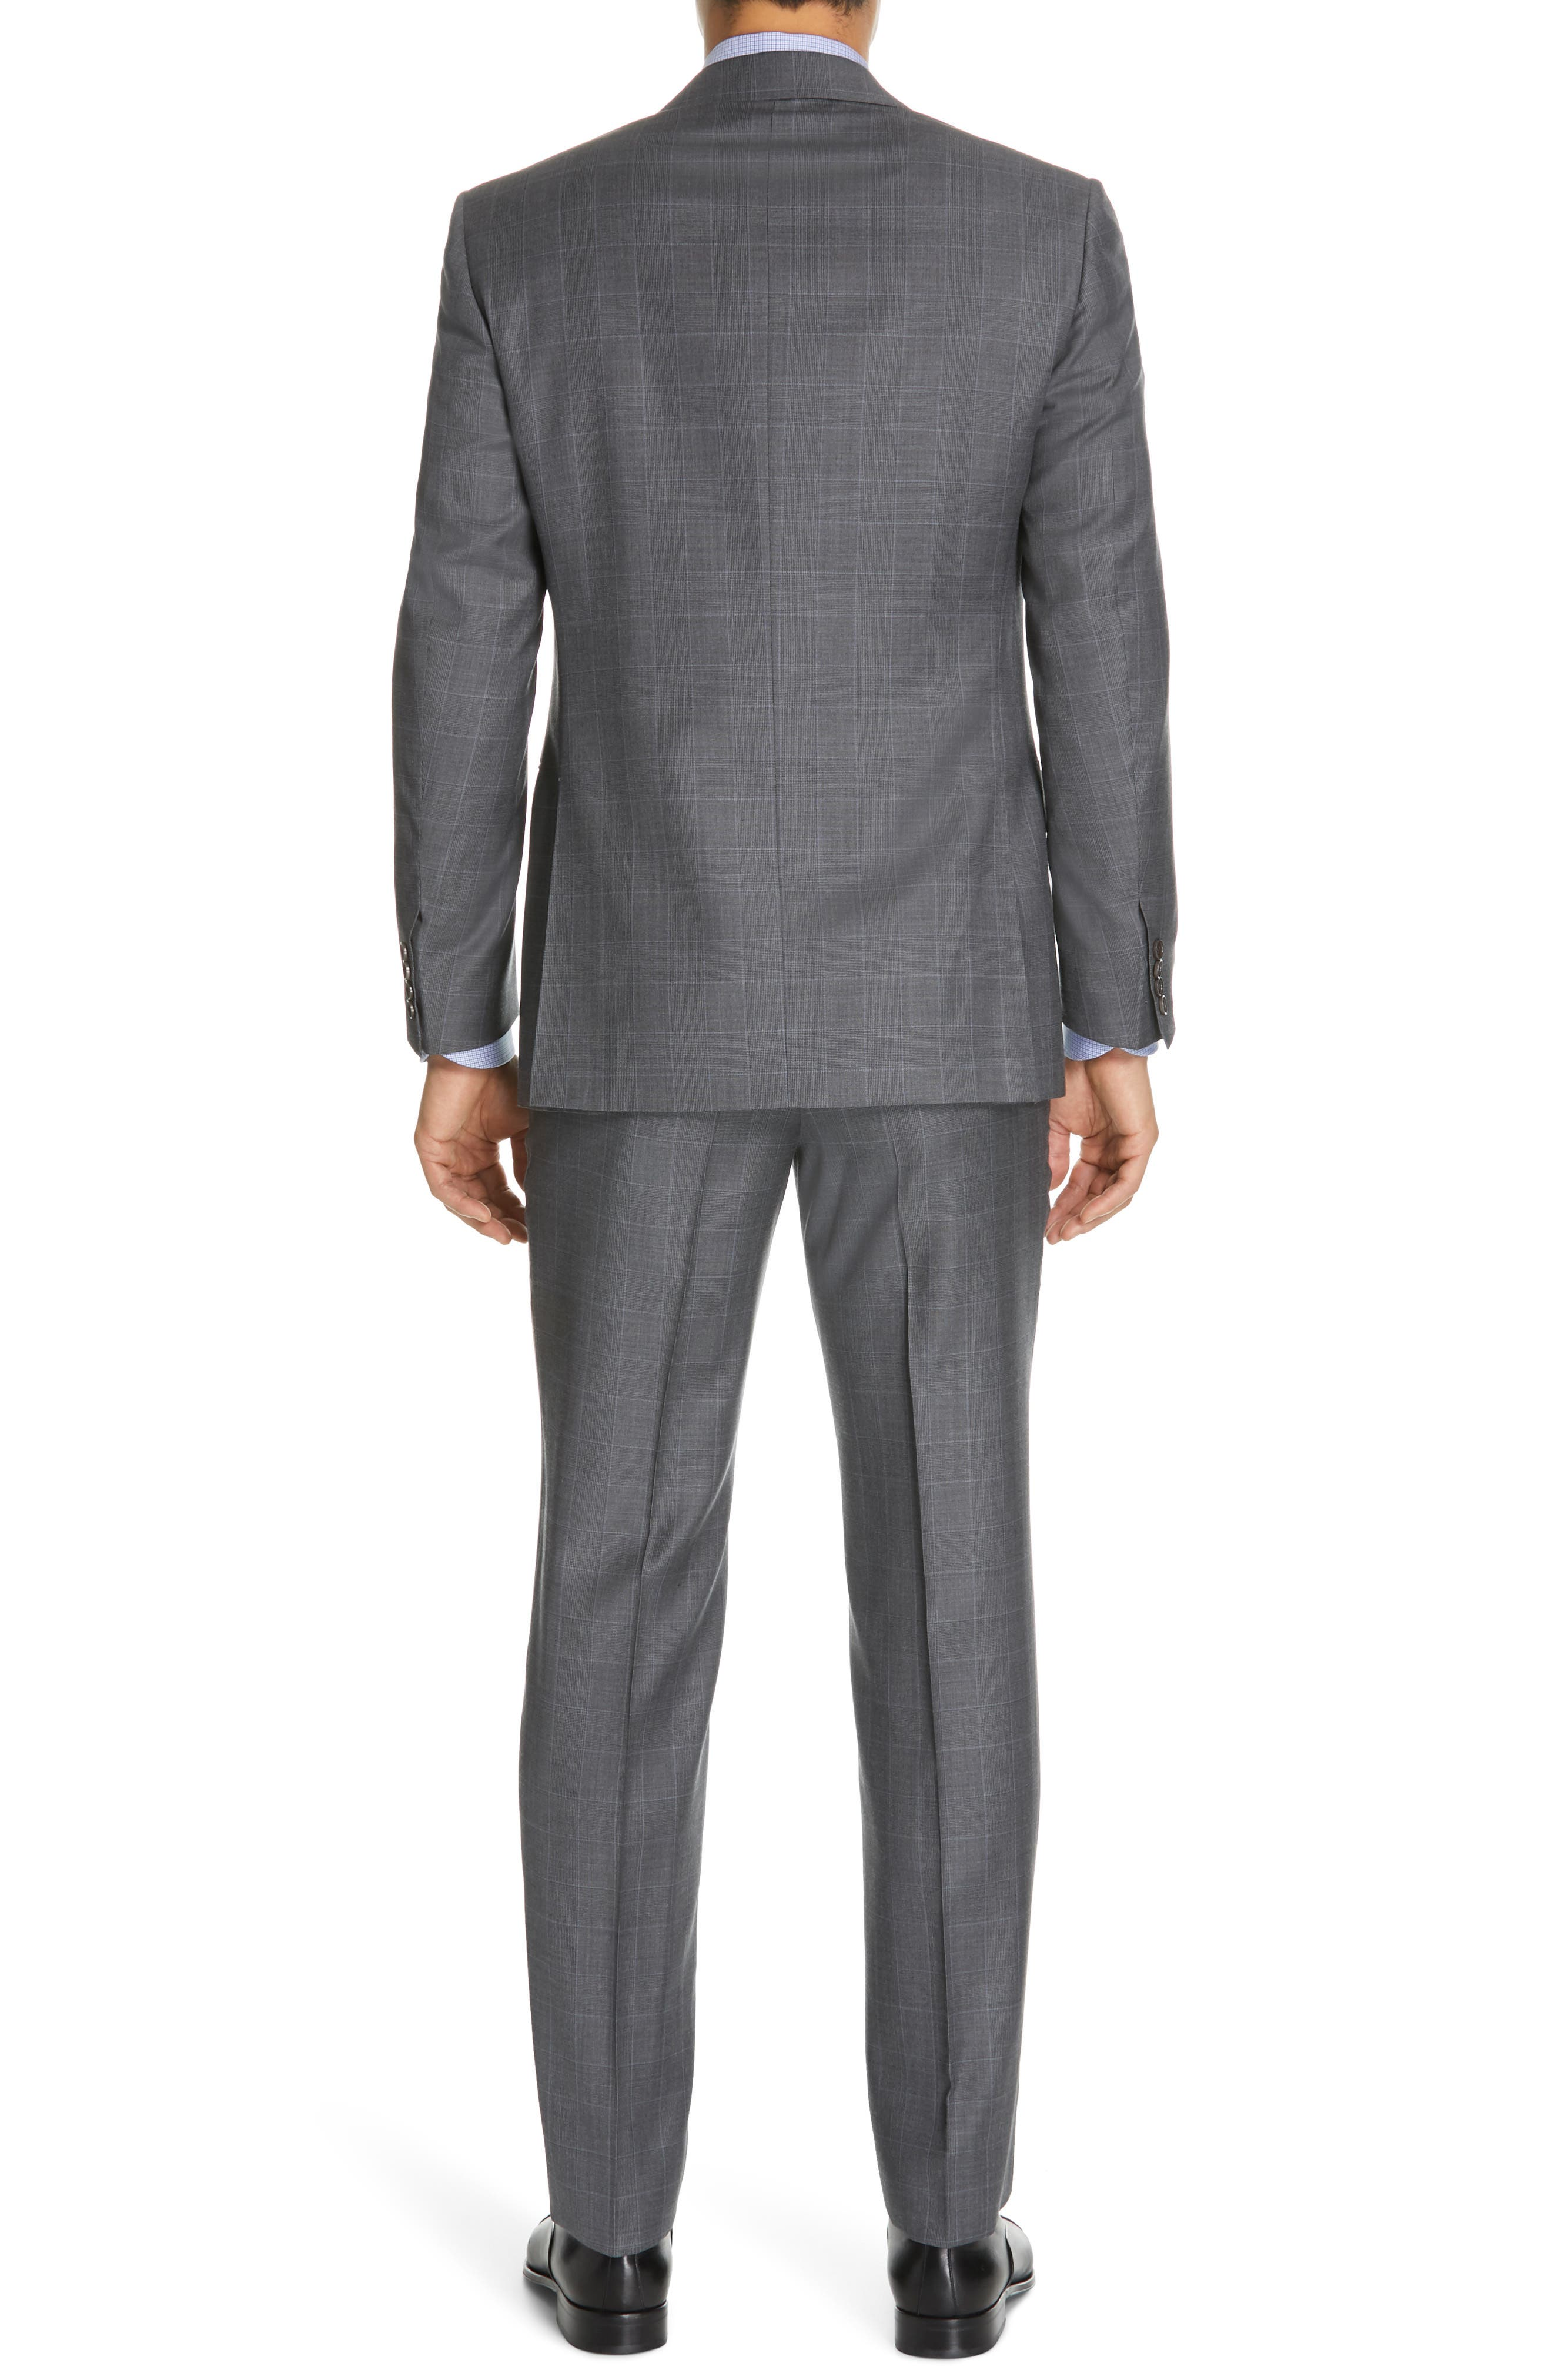 CANALI, Sienna Classic Fit Plaid Wool Suit, Alternate thumbnail 2, color, GREY